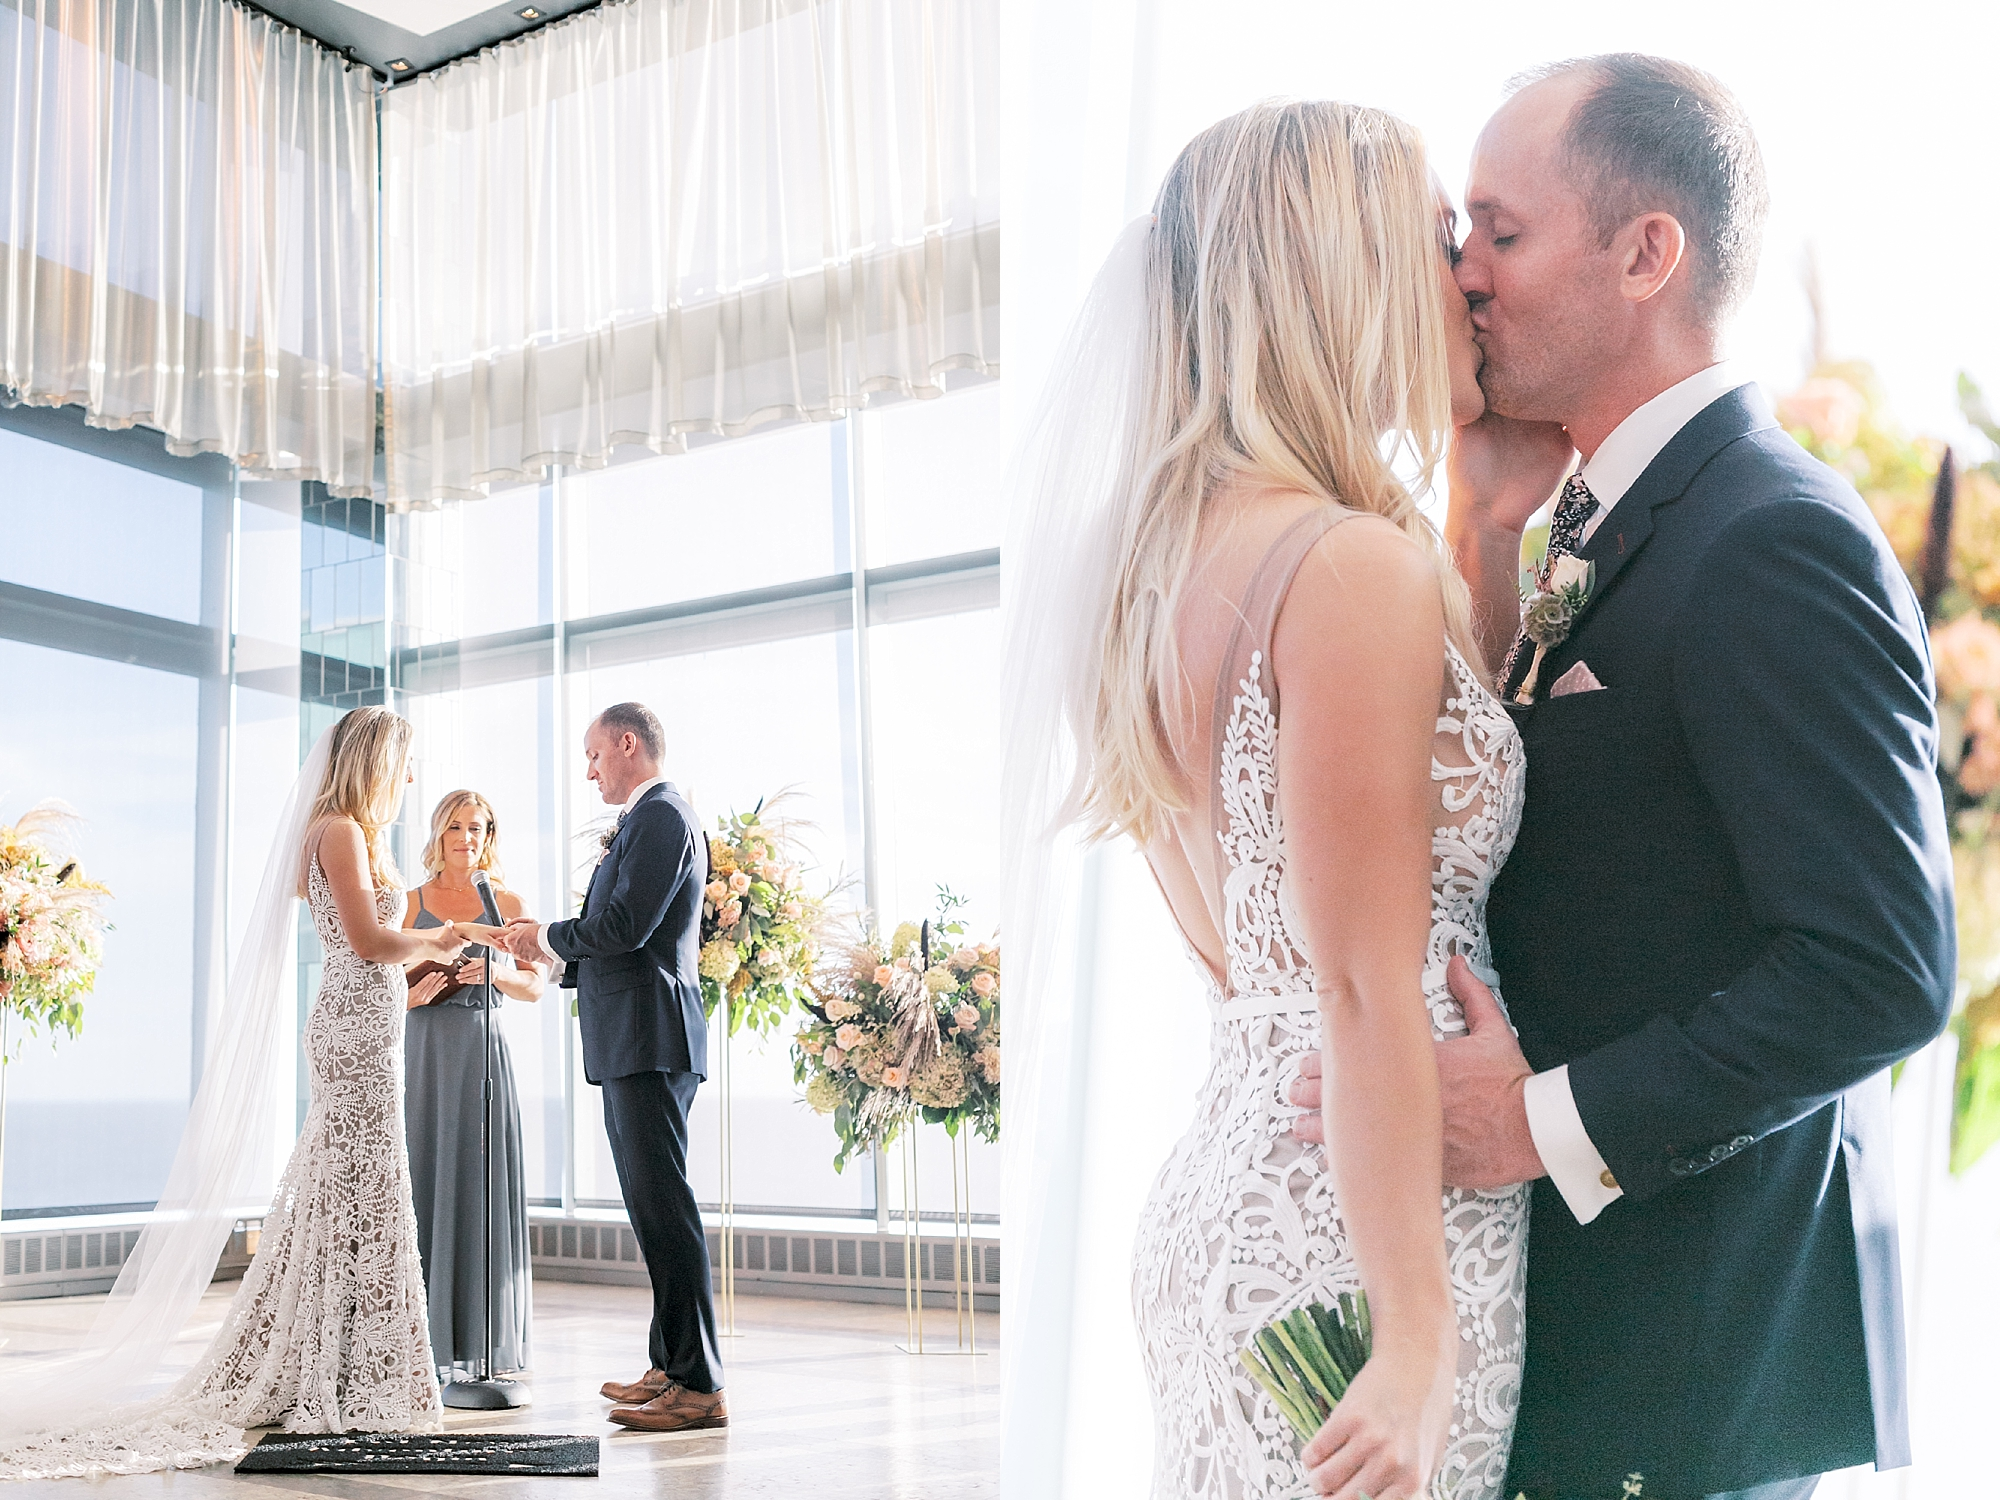 Stylish and Free Spirited Wedding Photography at One Atlantic in Atlantic City NJ by Magdalena Studios 0036 1